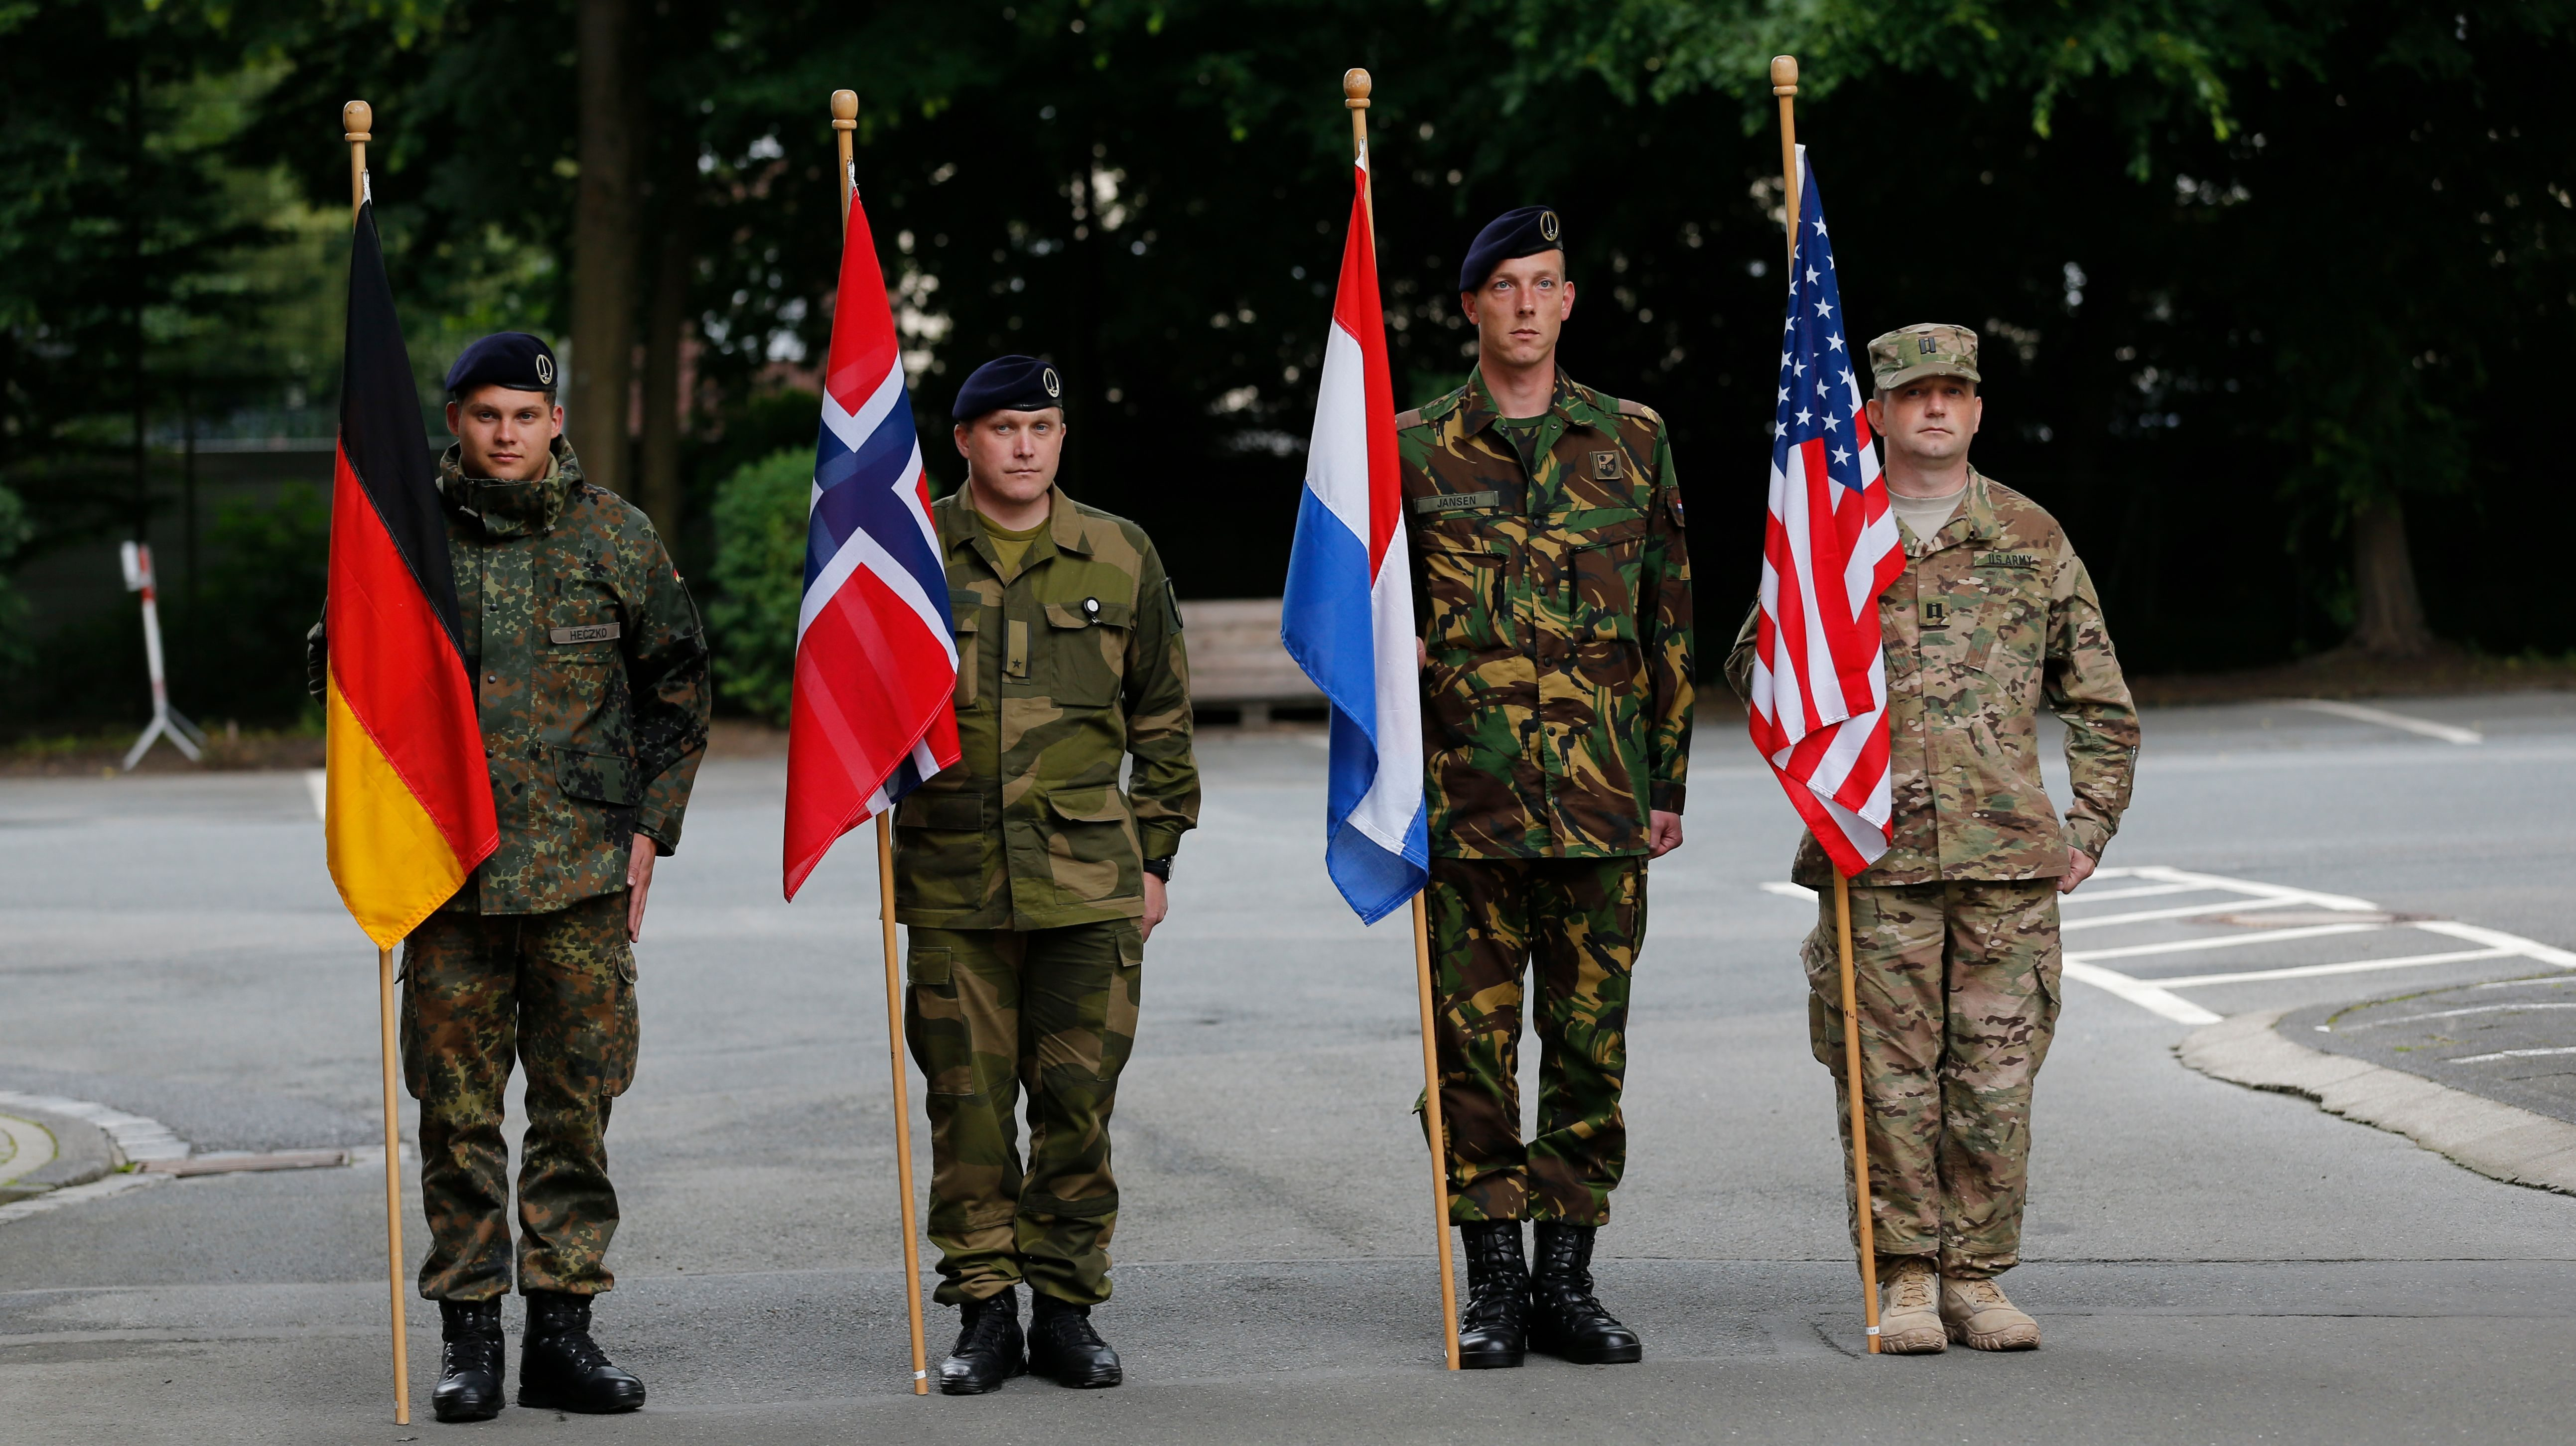 NATO states soldiers of Germany, Norway, the Netherlands and the U.S. stand to attention.